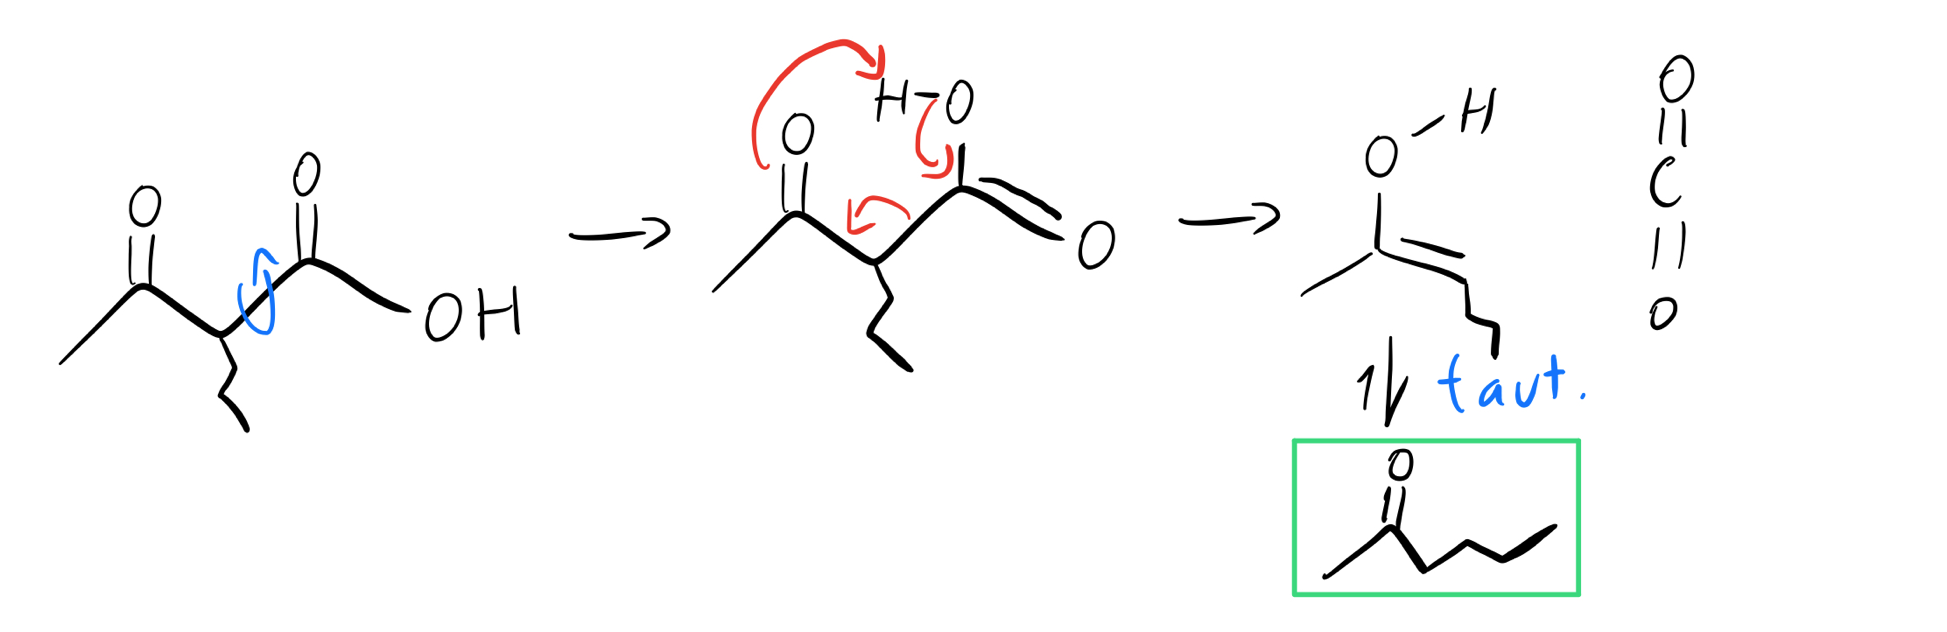 Tautomerization-and-decarboxylation